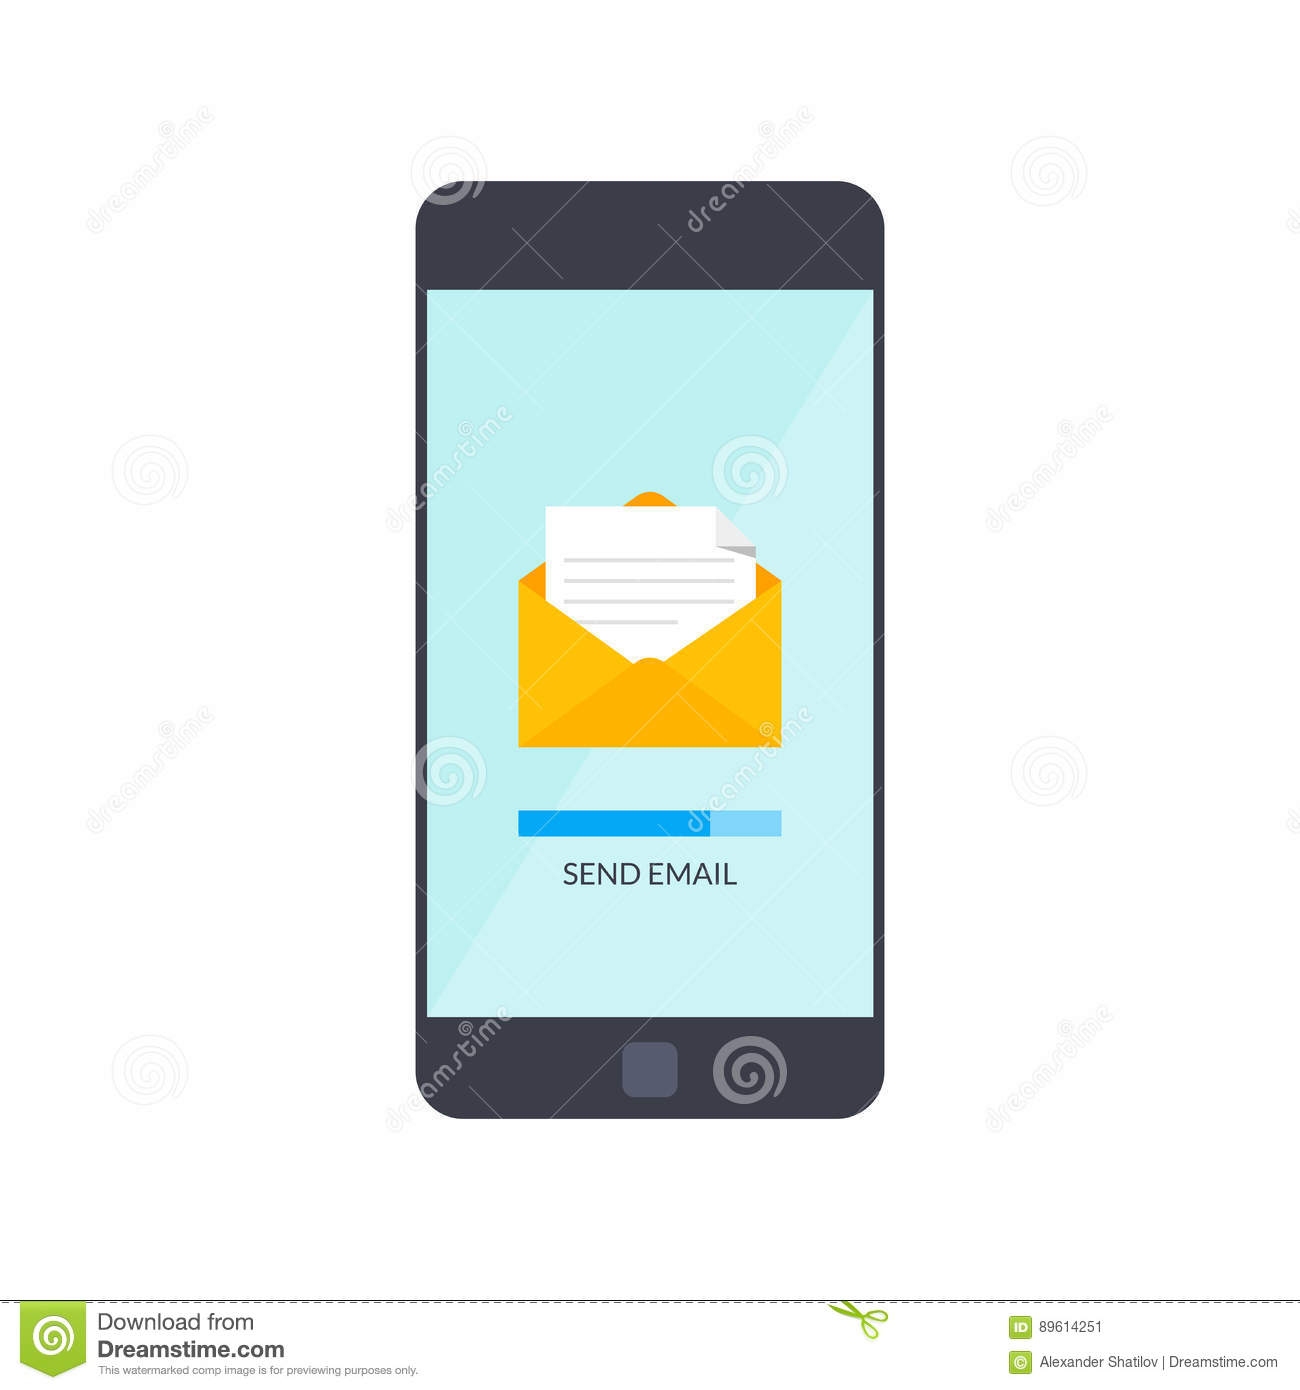 how to send message to phone from email